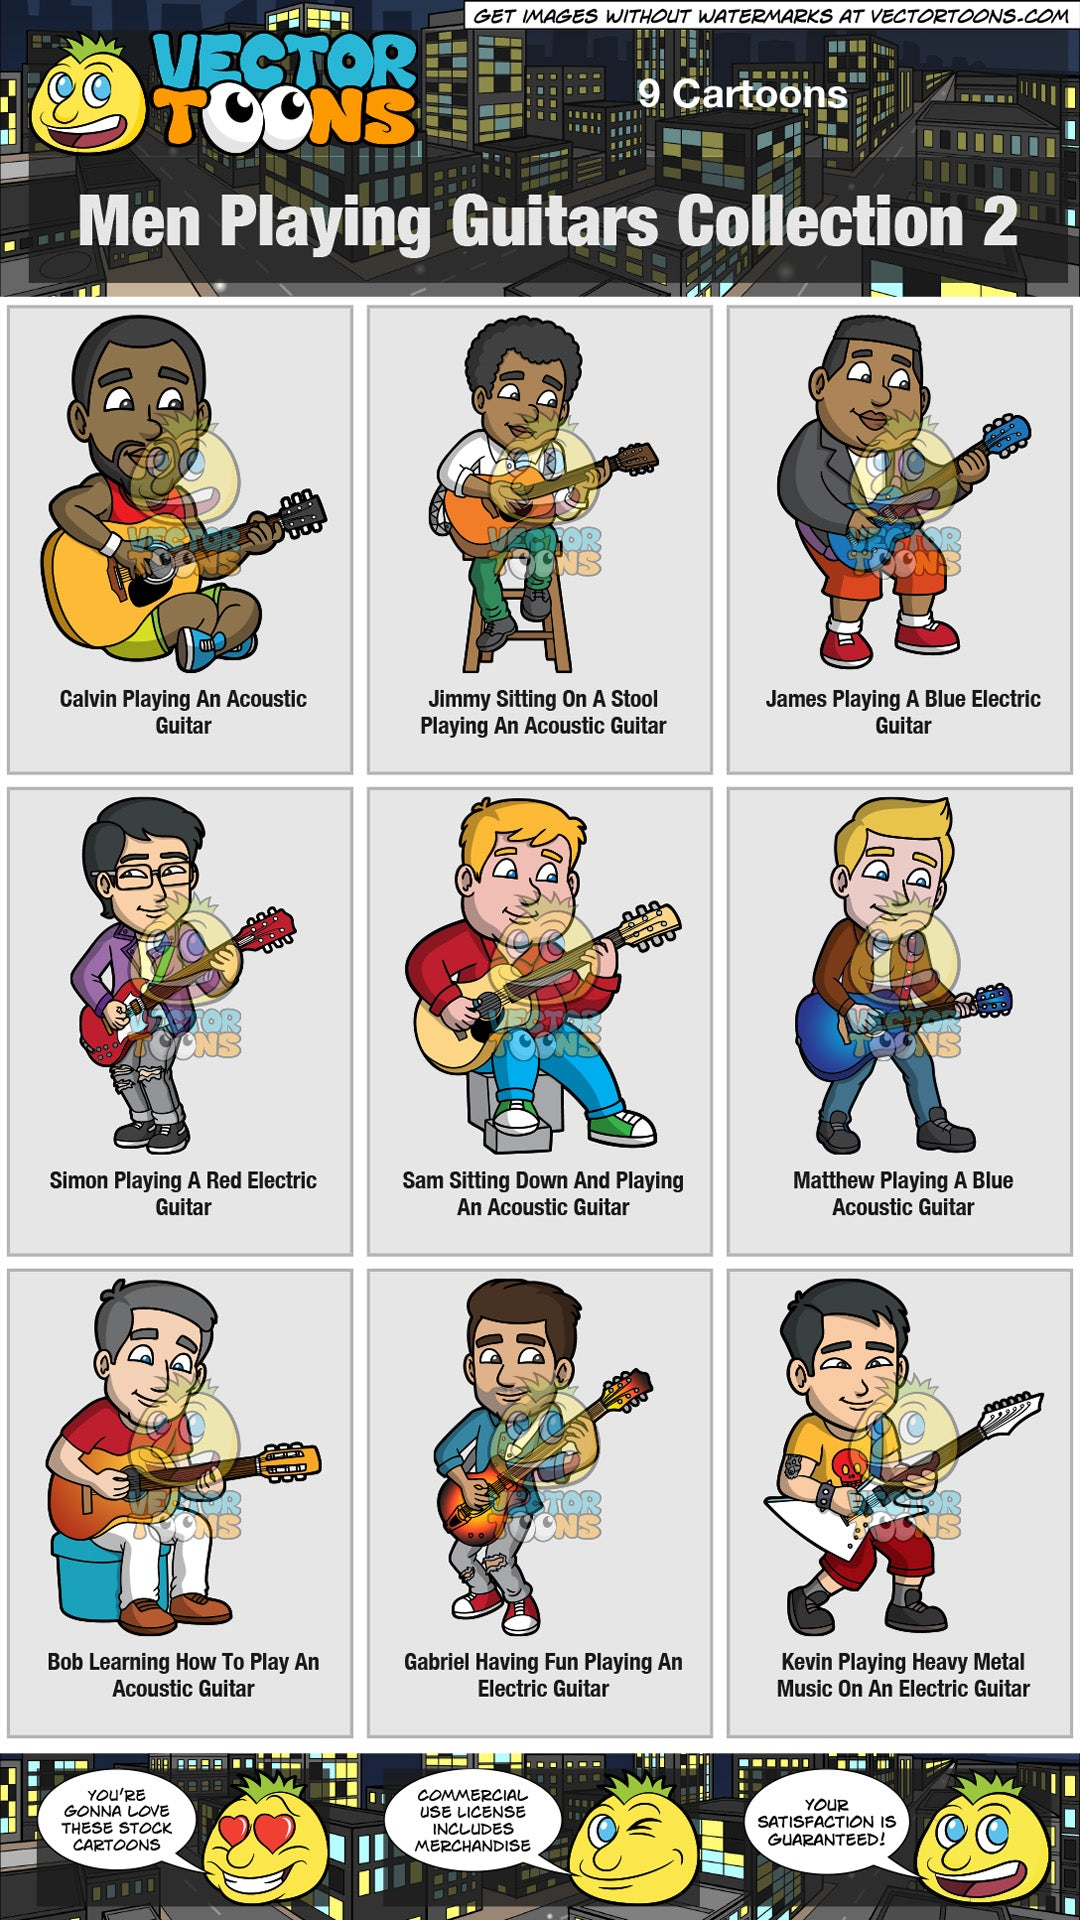 Men Playing Guitars Collection 2